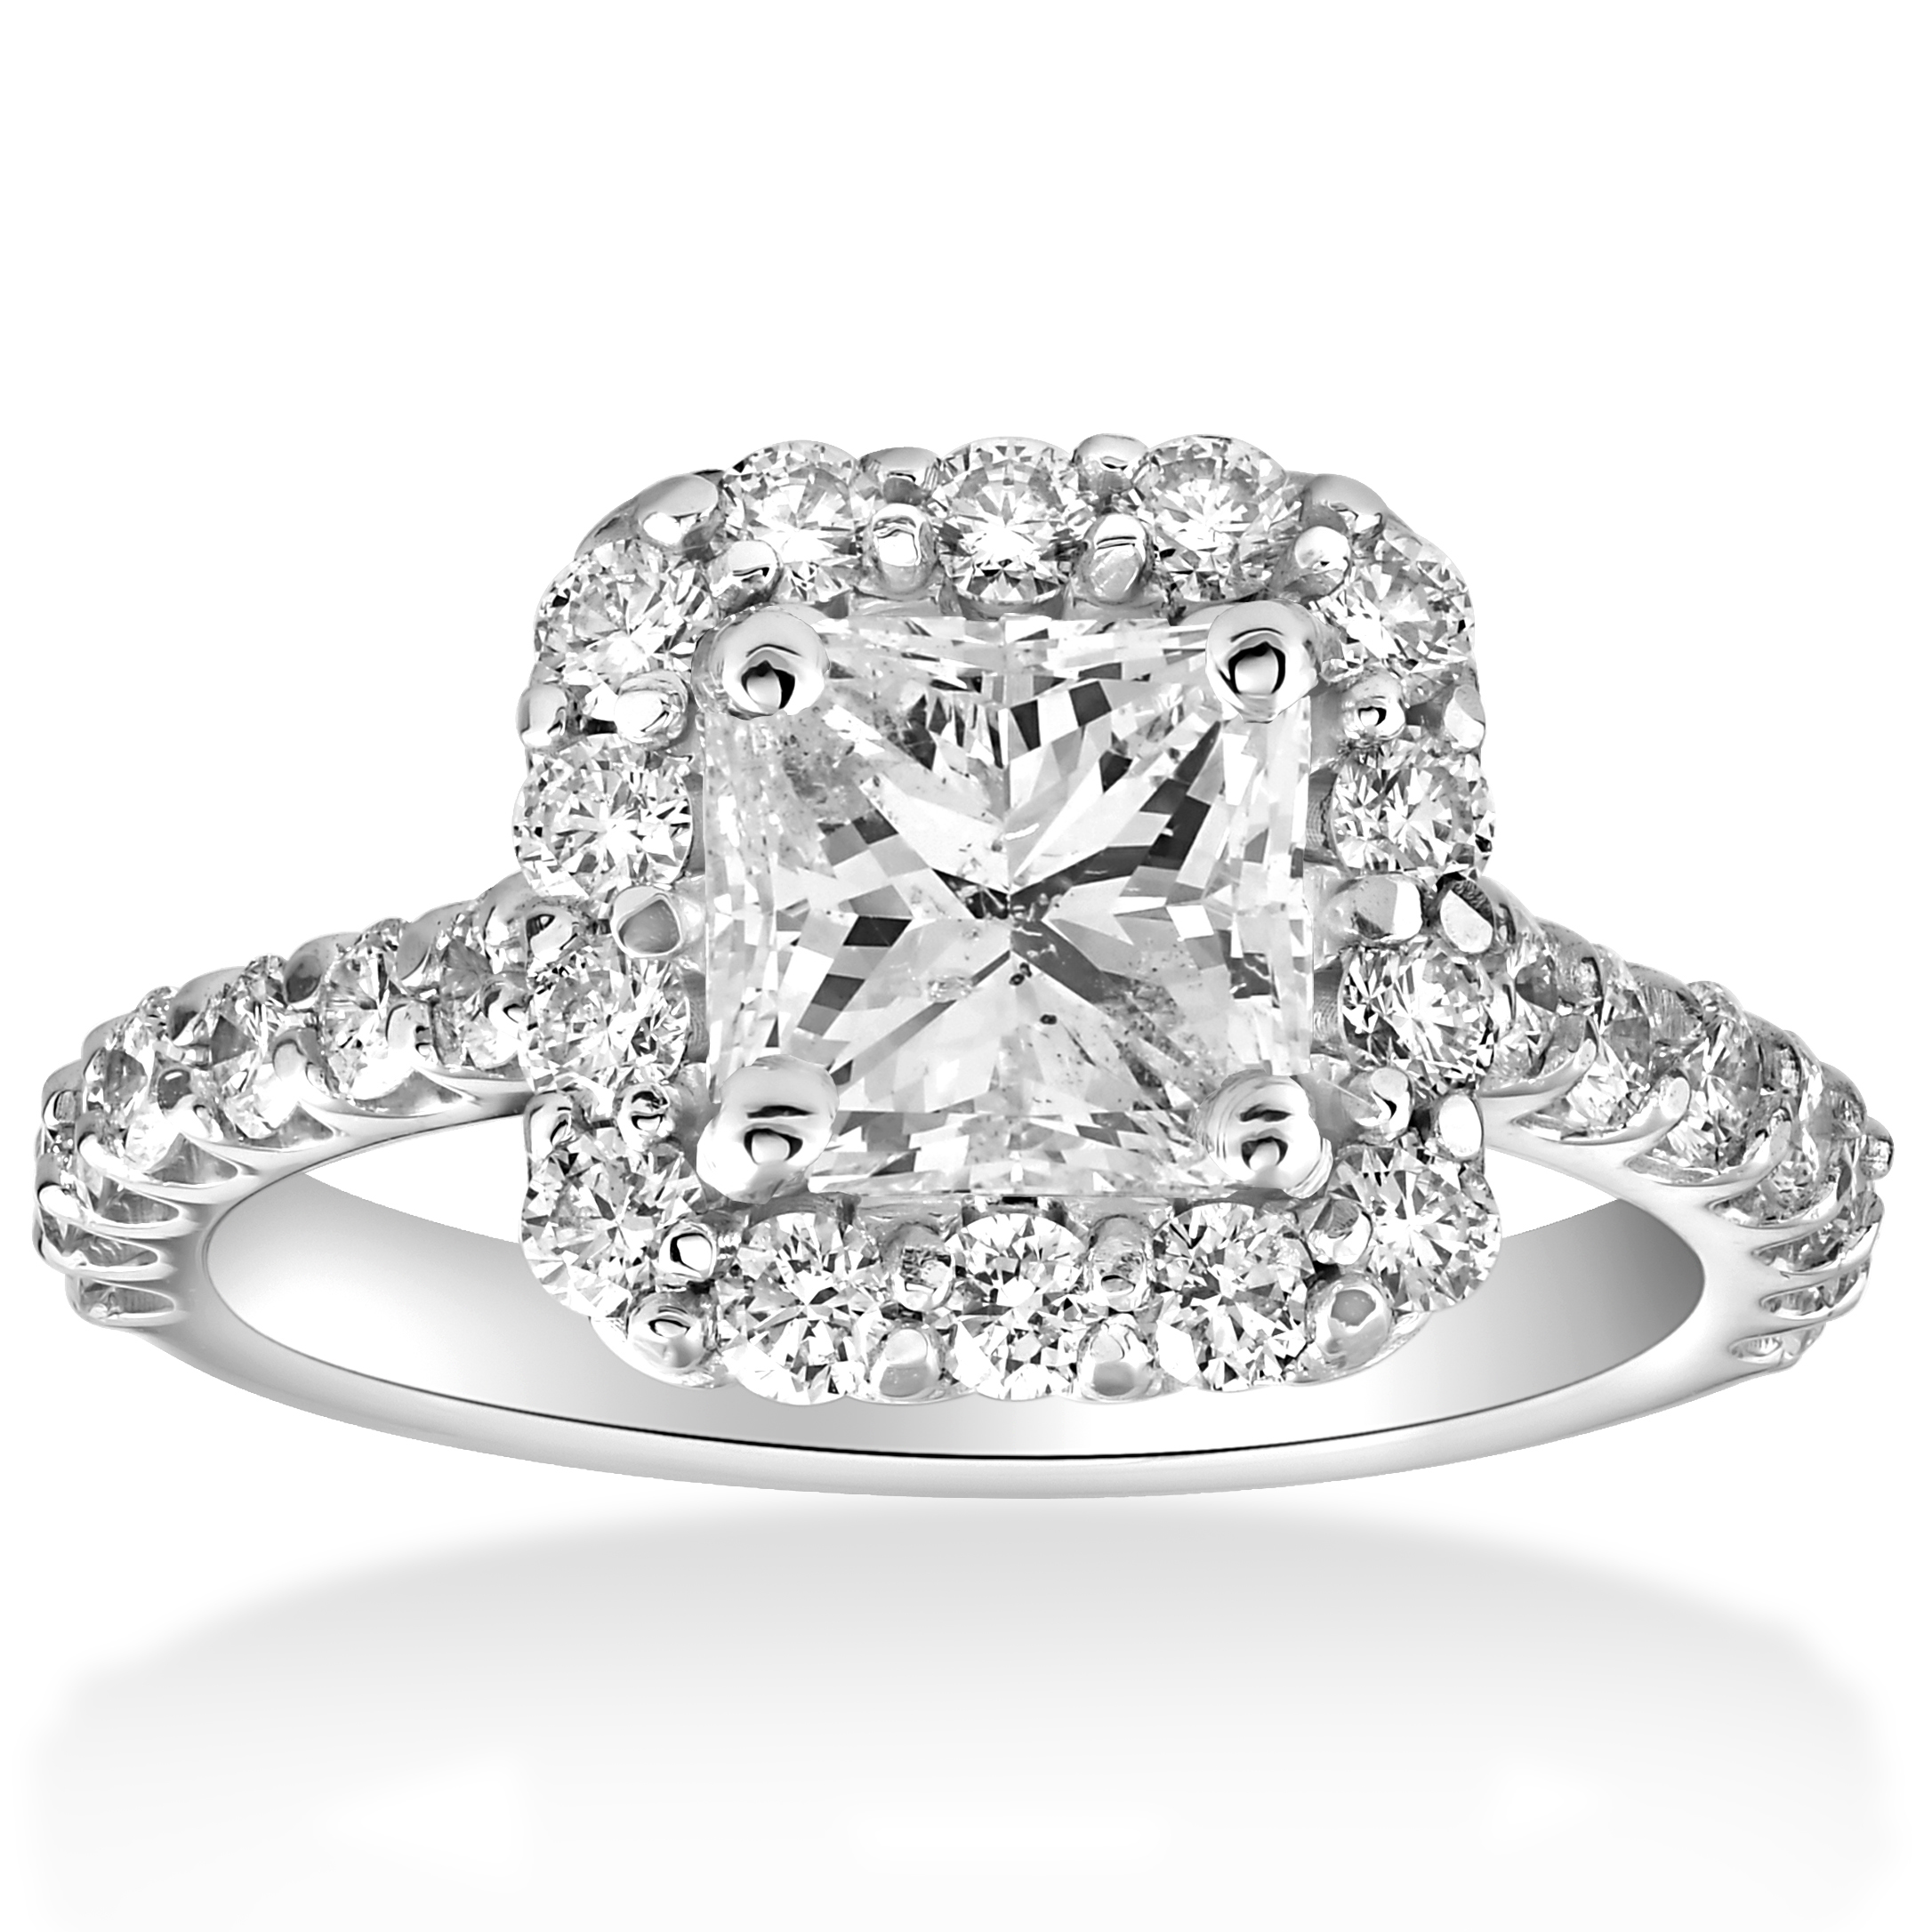 2 cttw Halo Princess Cut Solitaire Diamond Engagement Ring ...